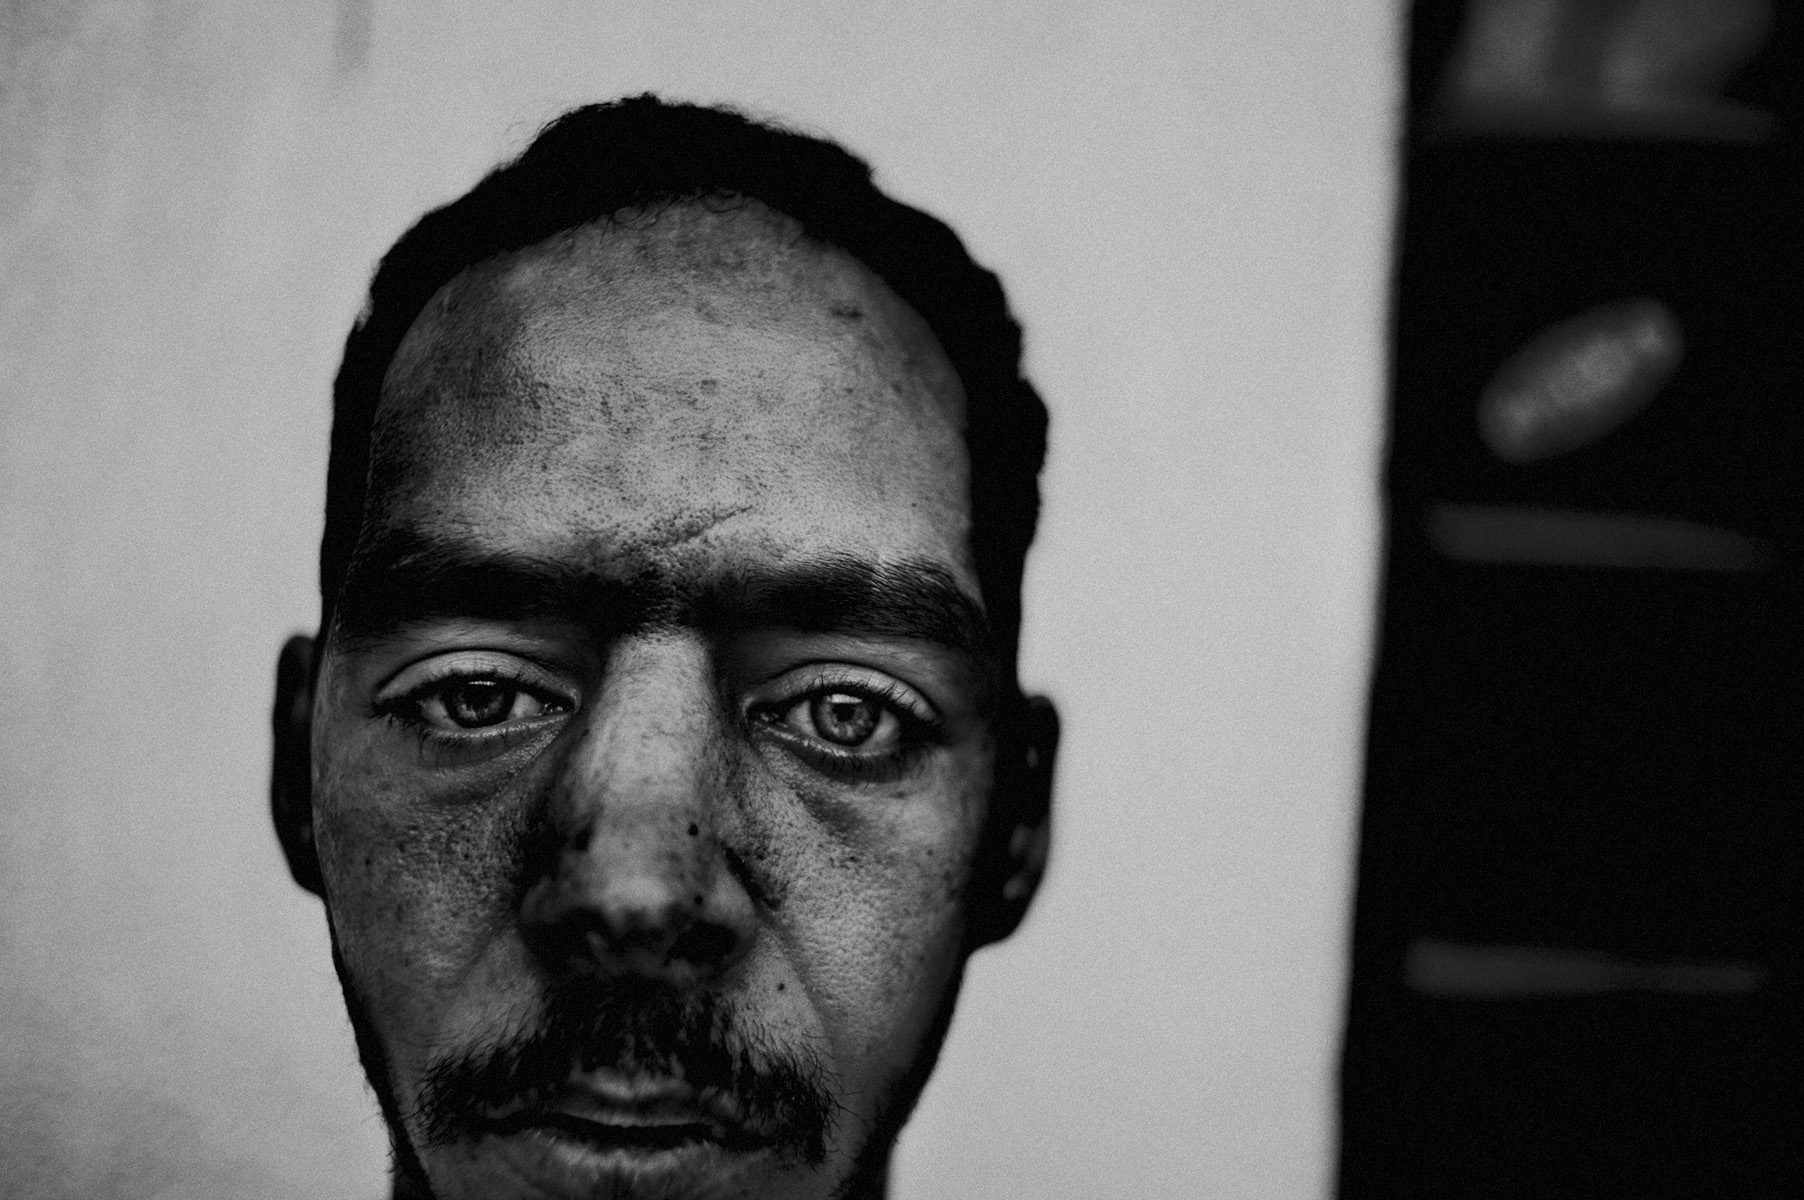 libya at the crossroads 2 : A veteran soldier who never recovered from the trauma of the war. He was captured and tortured by the loyalists